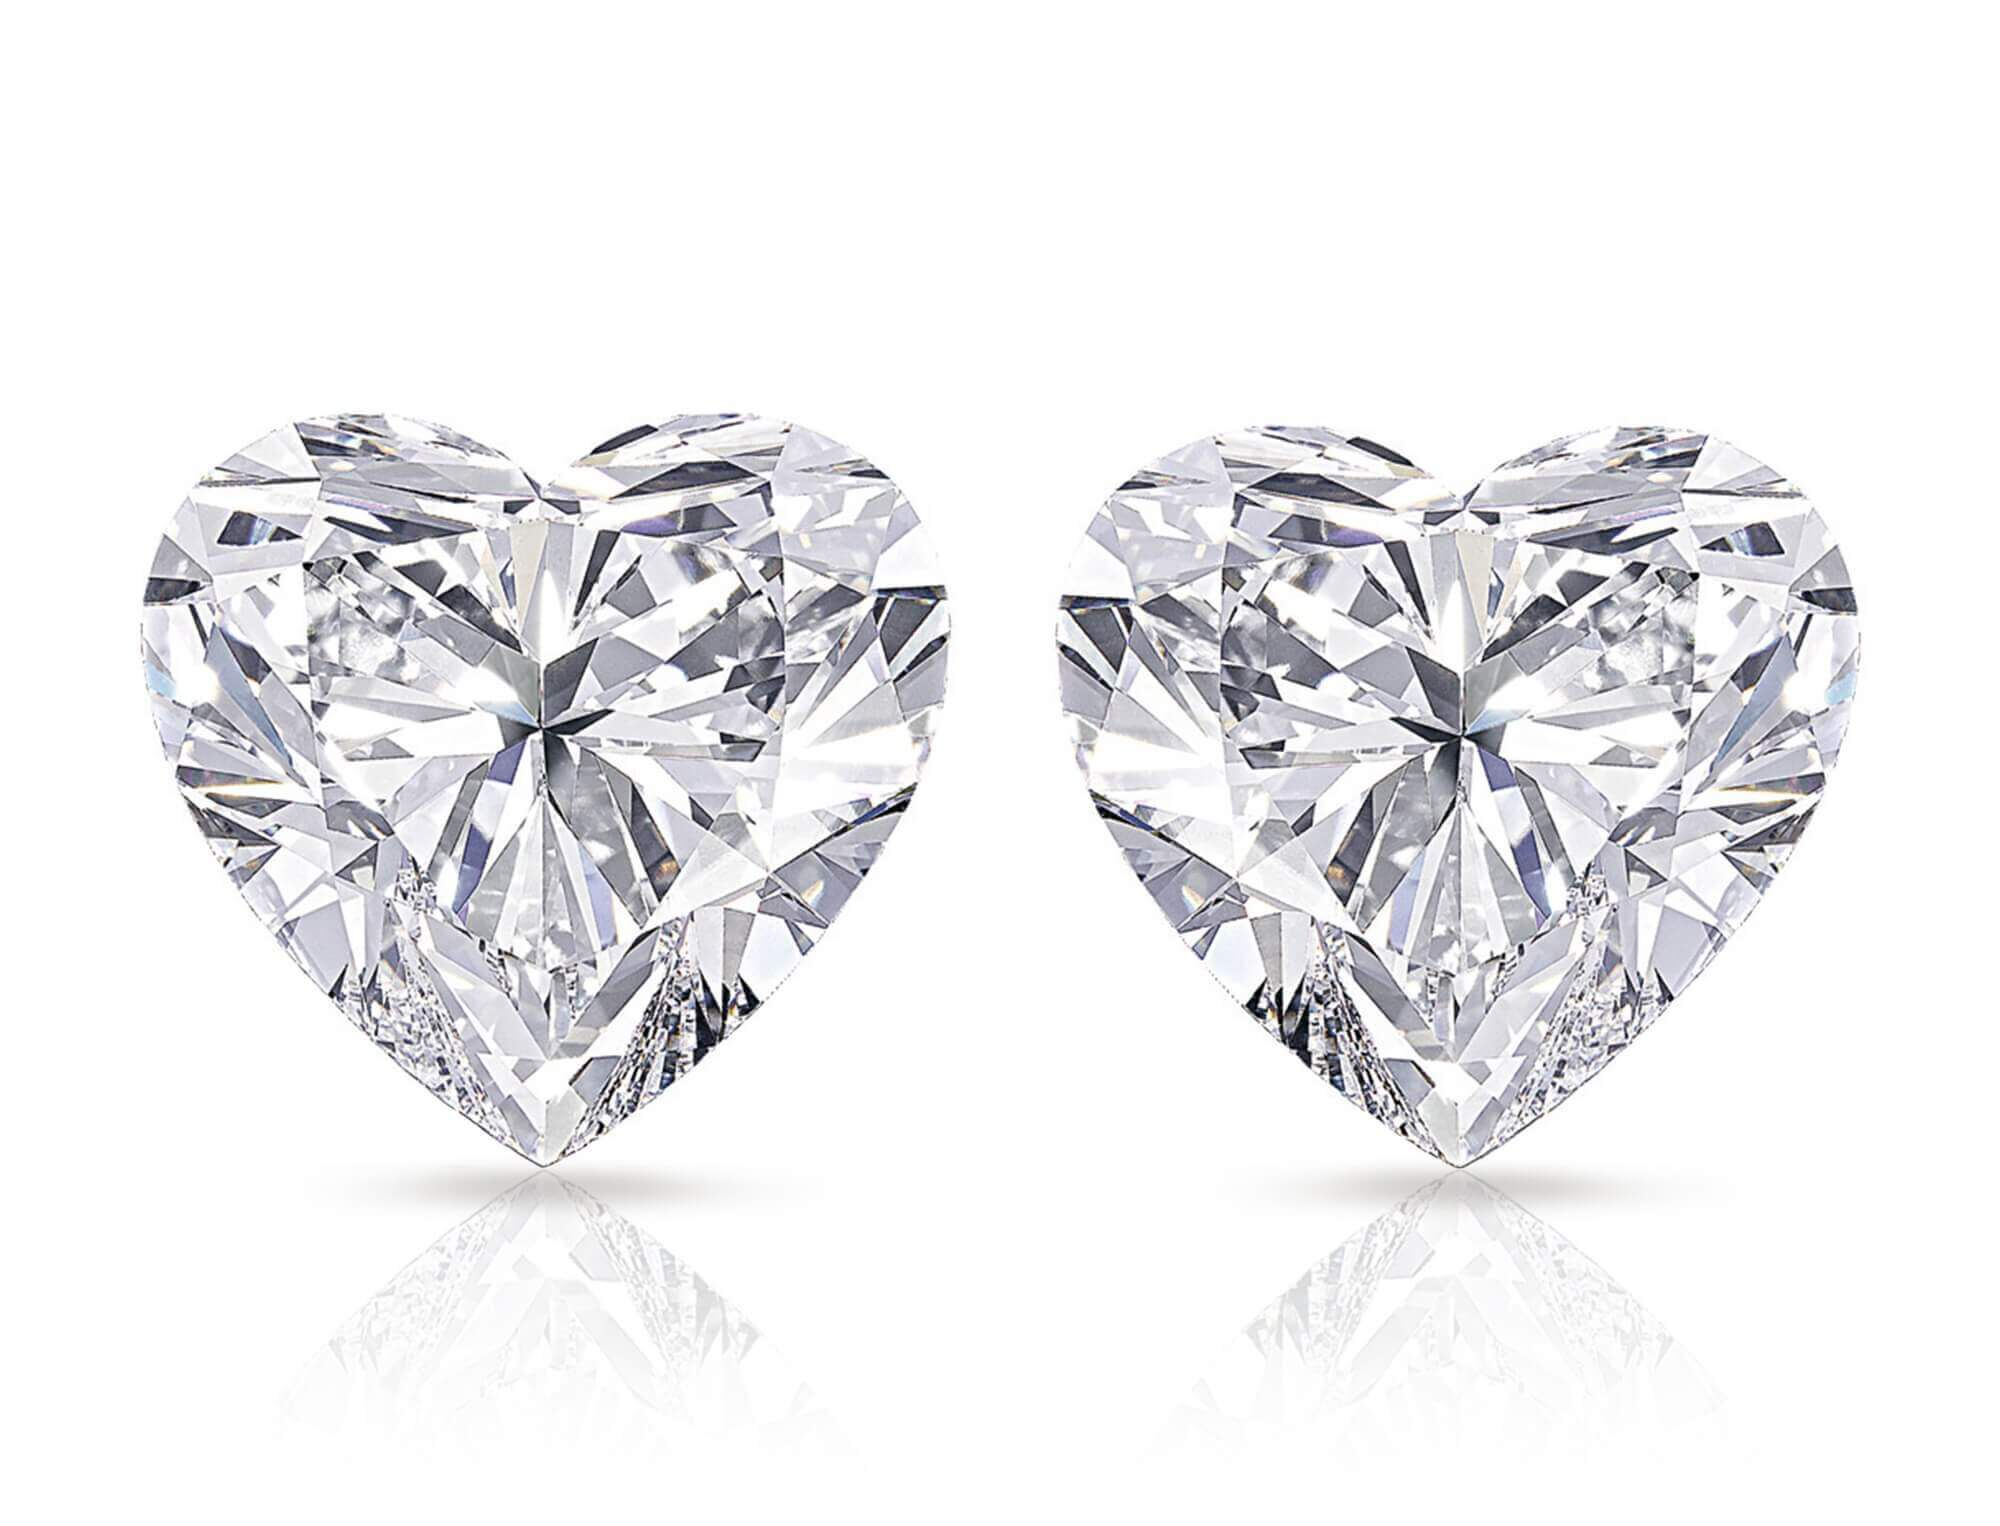 The Graff Sweethearts - 51.53 and 50.76 carat heart shape famous diamonds